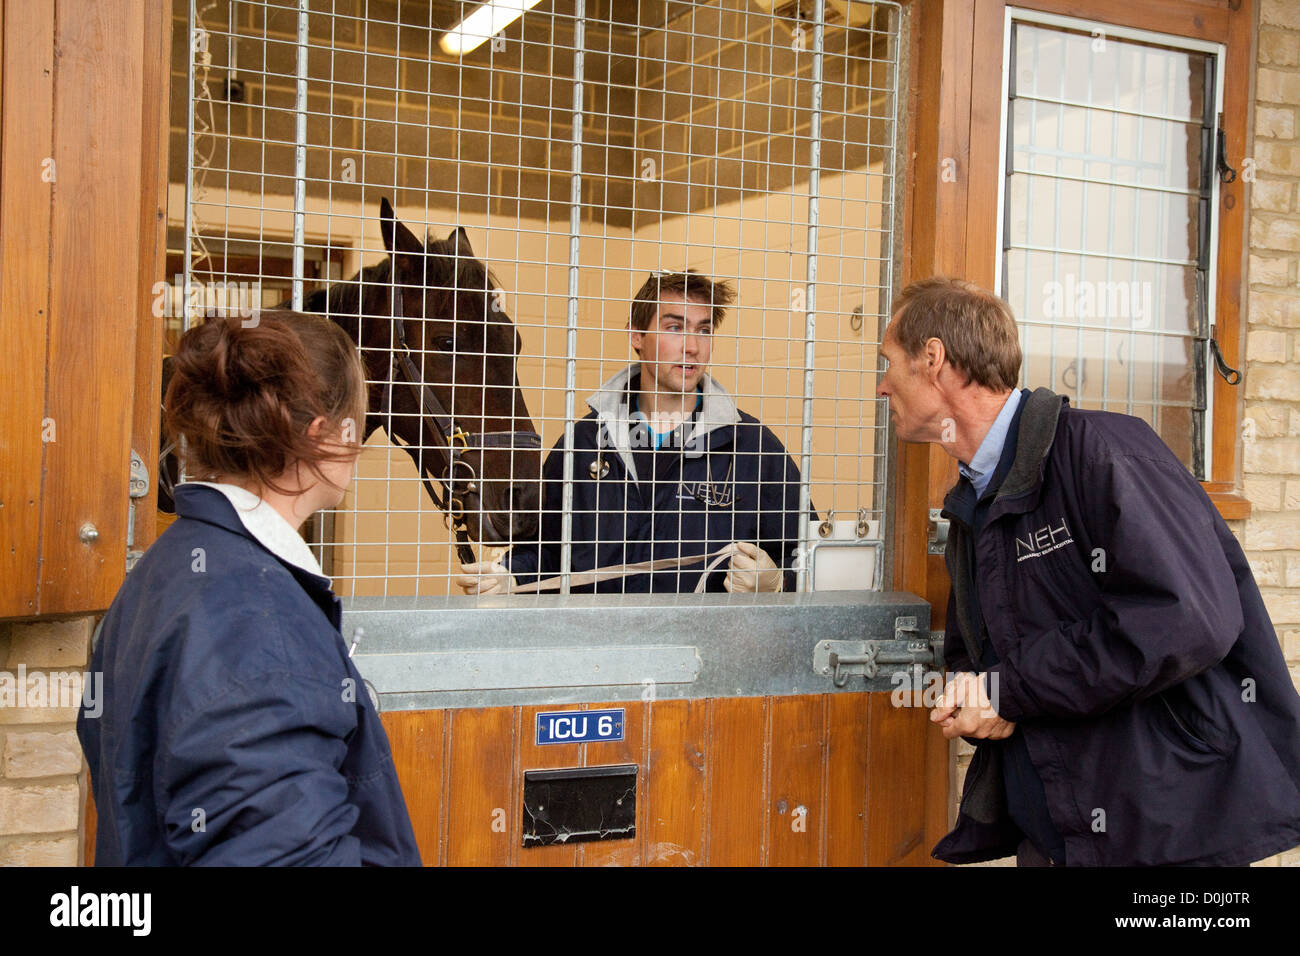 Vets discuss a sick horse, Newmarket Equine animal Hospital, Newmarket Suffolk UK - Stock Image